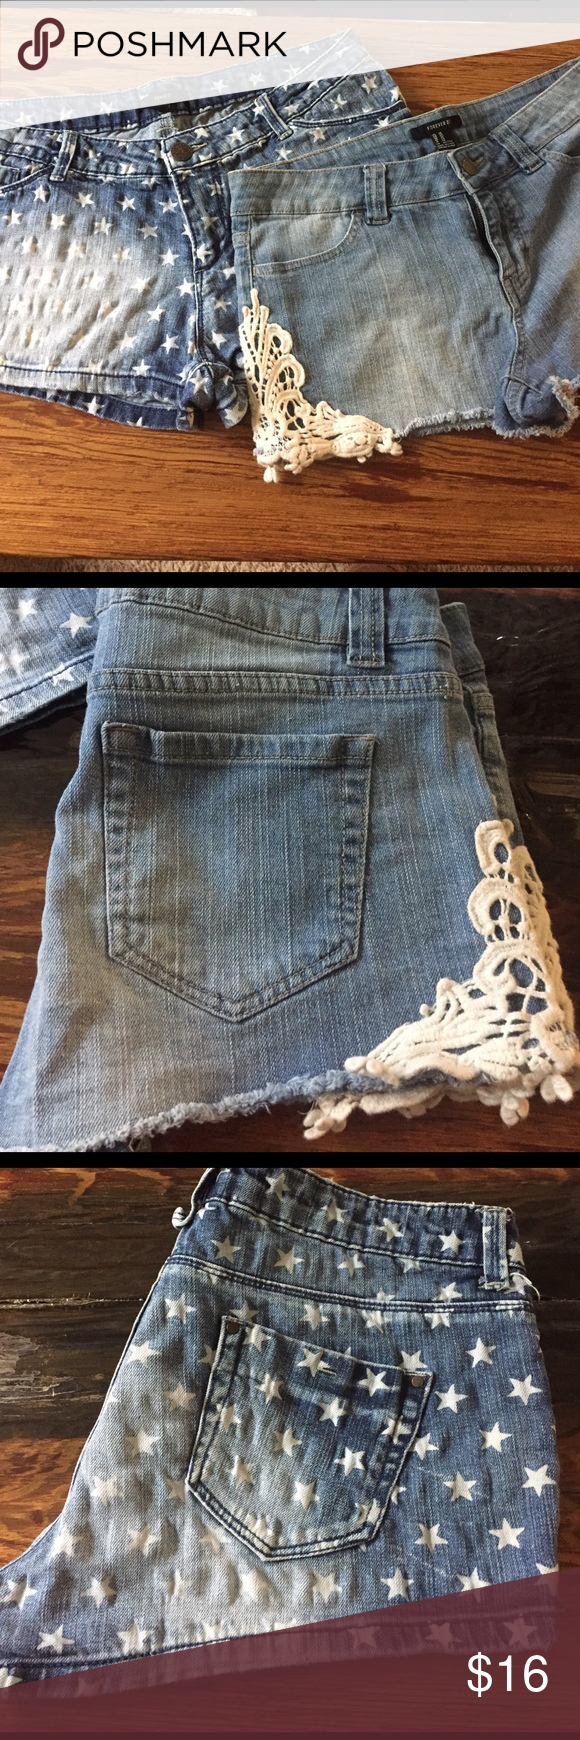 Bundle! Forever 21 jean shorts. Bundle! Forever 21 jean shorts. Light wash with lace embellished sides. Dark wash with white stars.  Willing to sell separately as well. Make me an offer! Forever 21 Shorts Jean Shorts